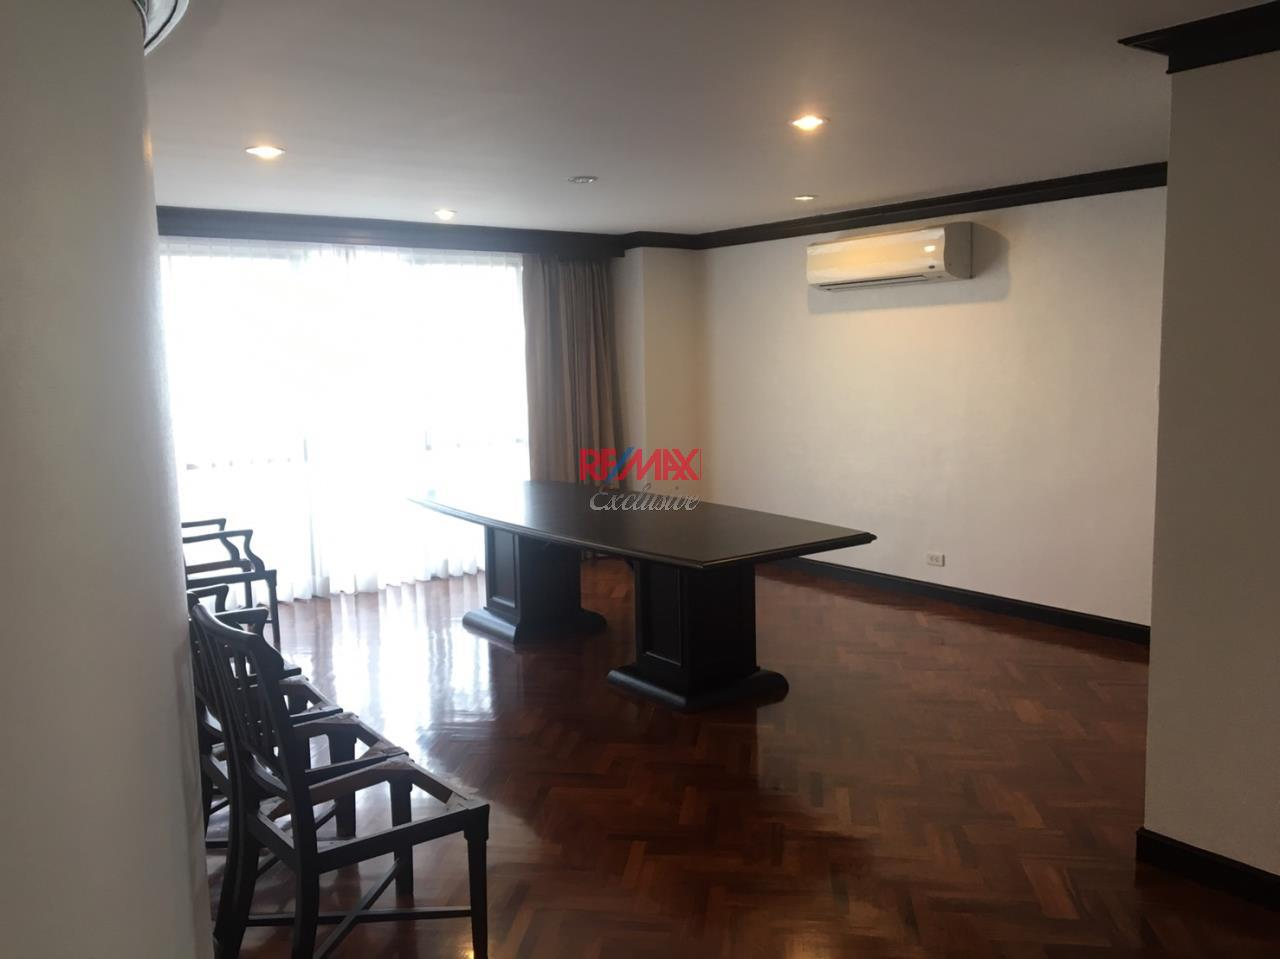 RE/MAX Exclusive Agency's Hawaii Tower, 4 Bedroom, 420 Sqm., Fully-Furnished, Special Price for RENT !!! 9